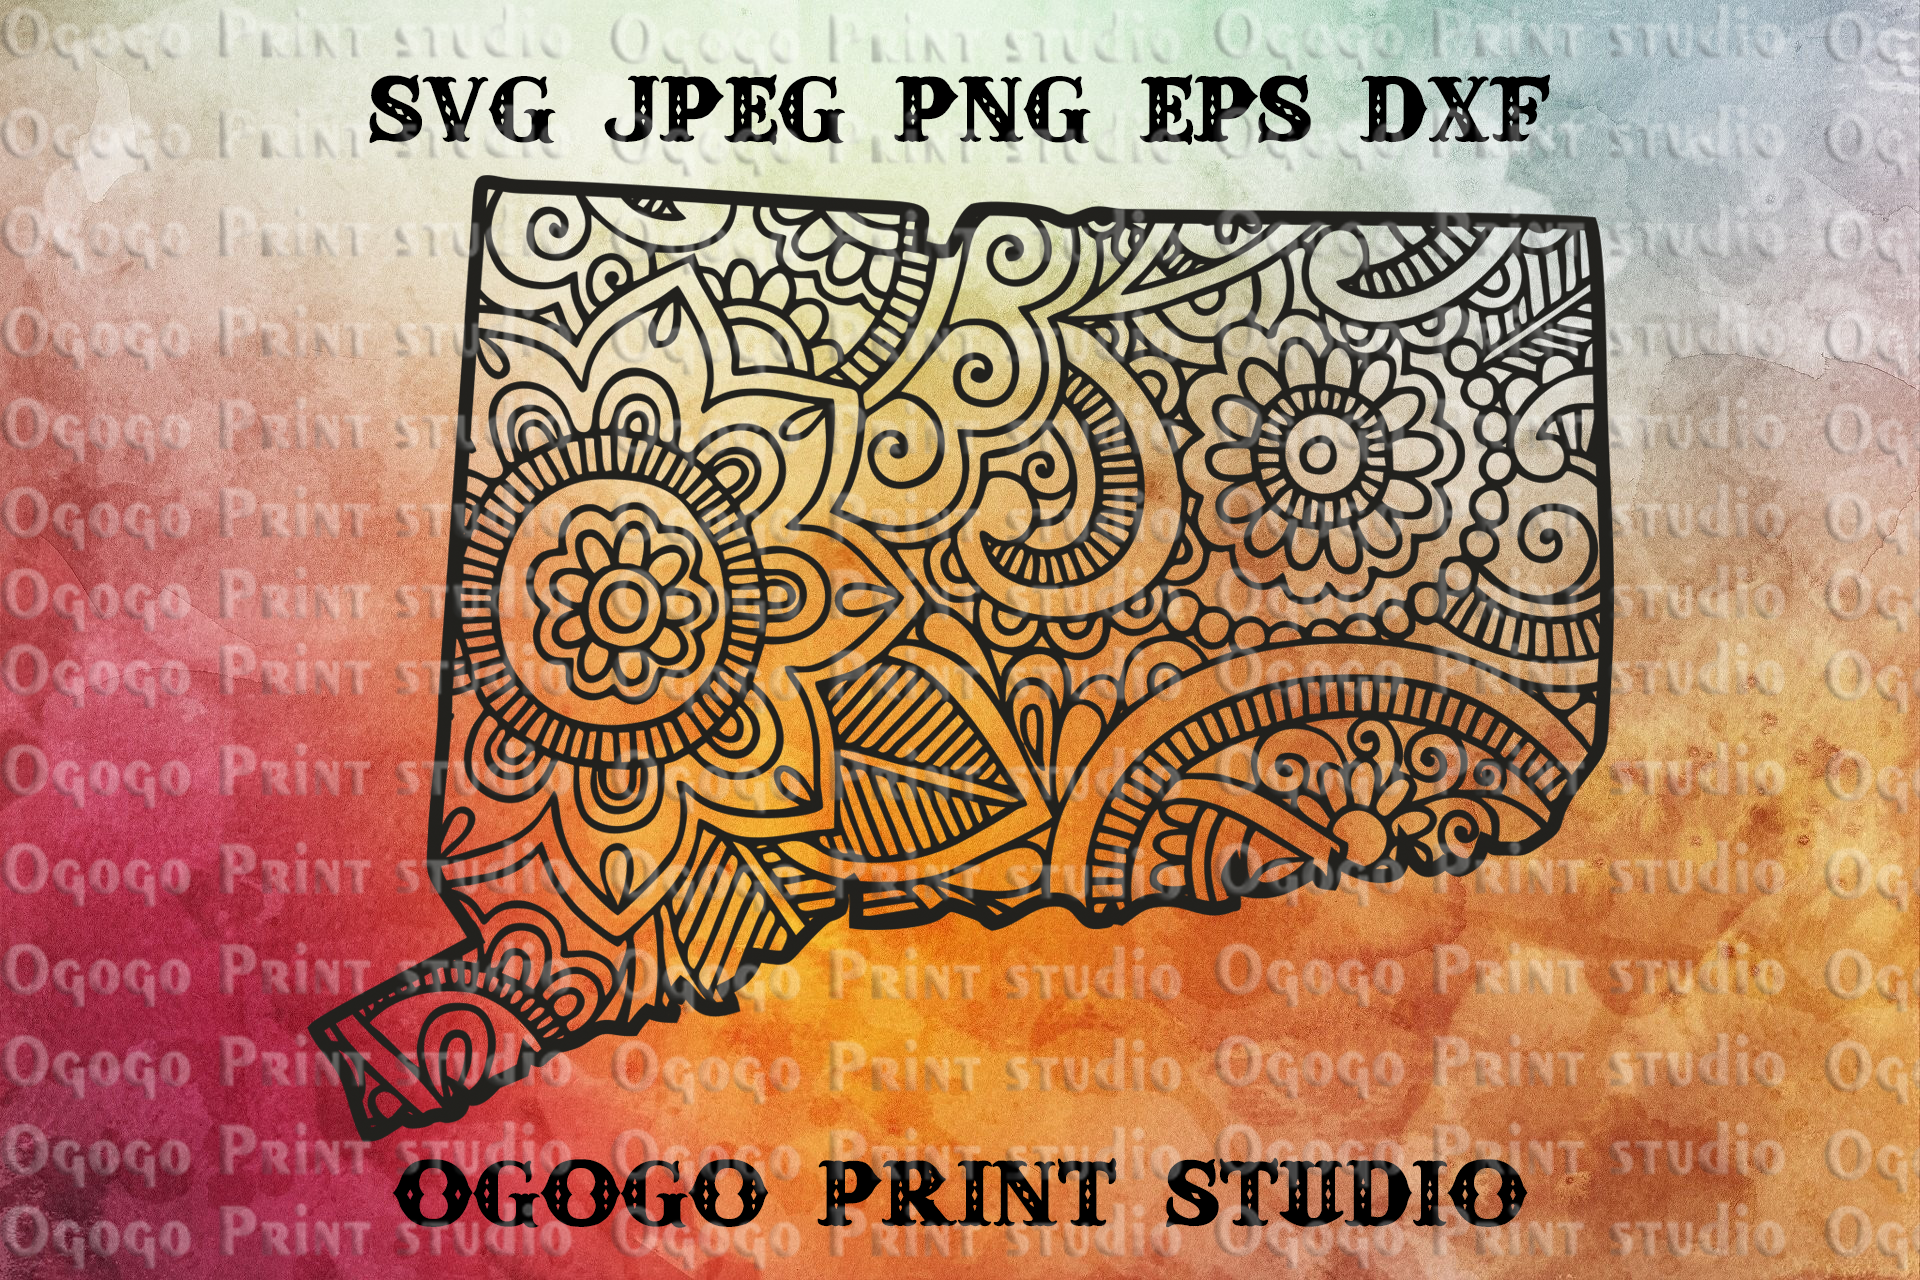 Connecticut svg, Map SVG, Zentangle SVG, Travel svg example image 1